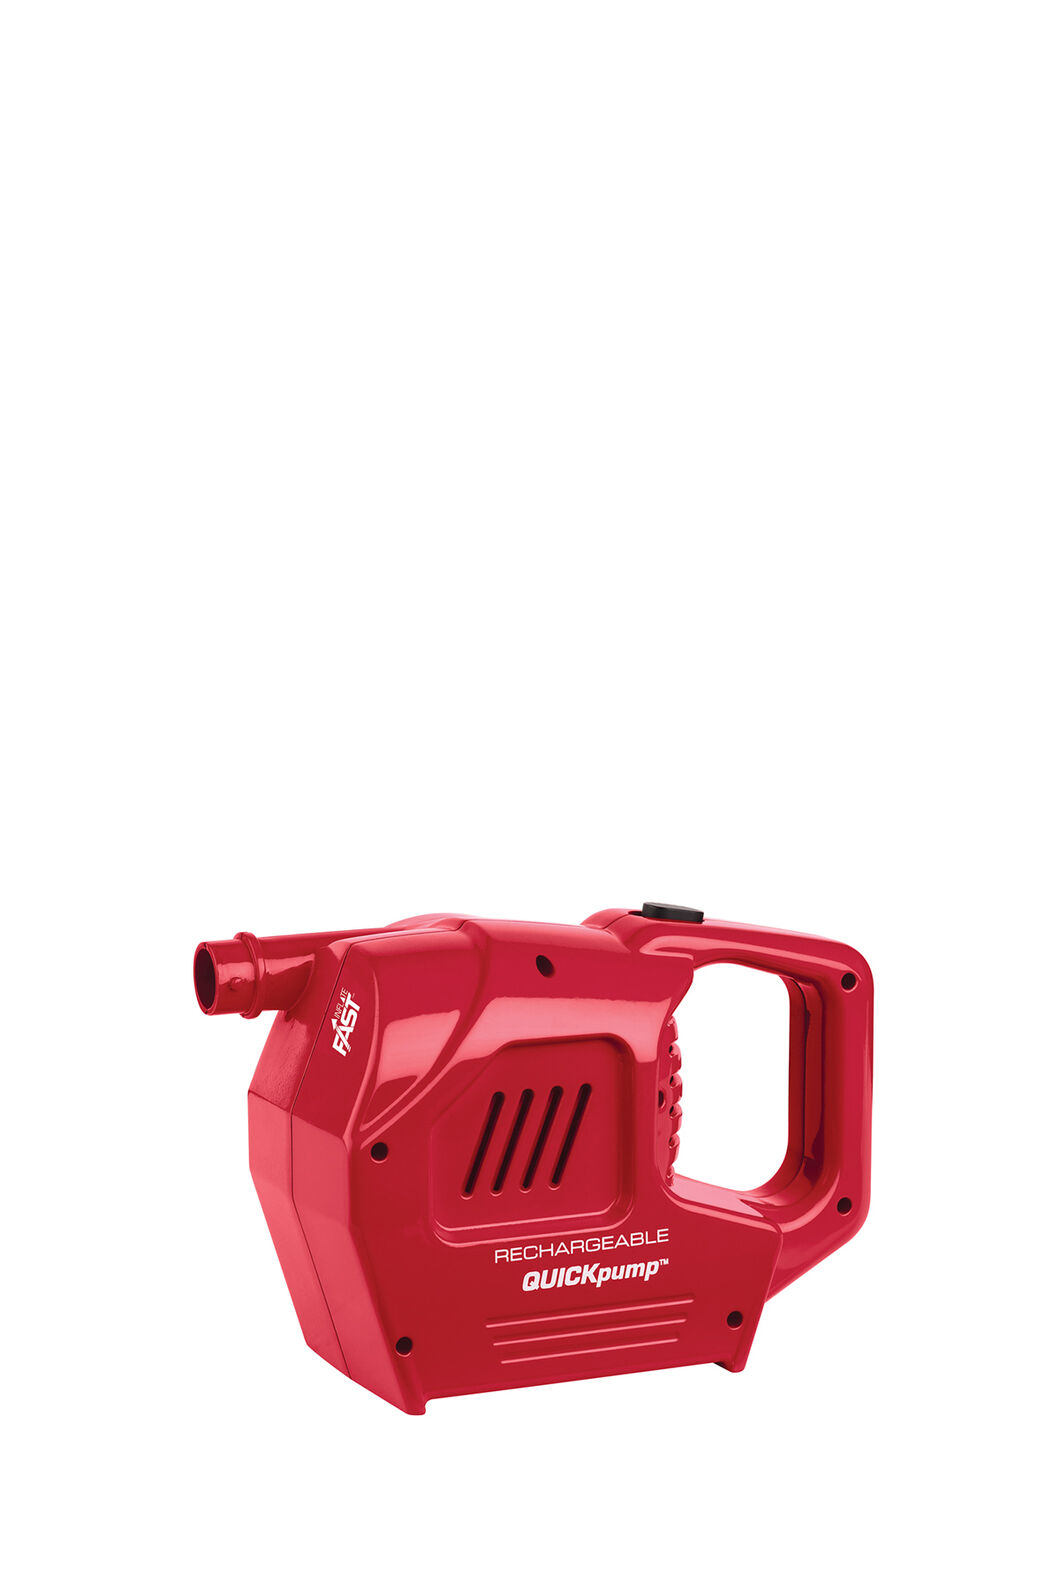 Coleman Rechargeable Quickpump Pump, None, hi-res